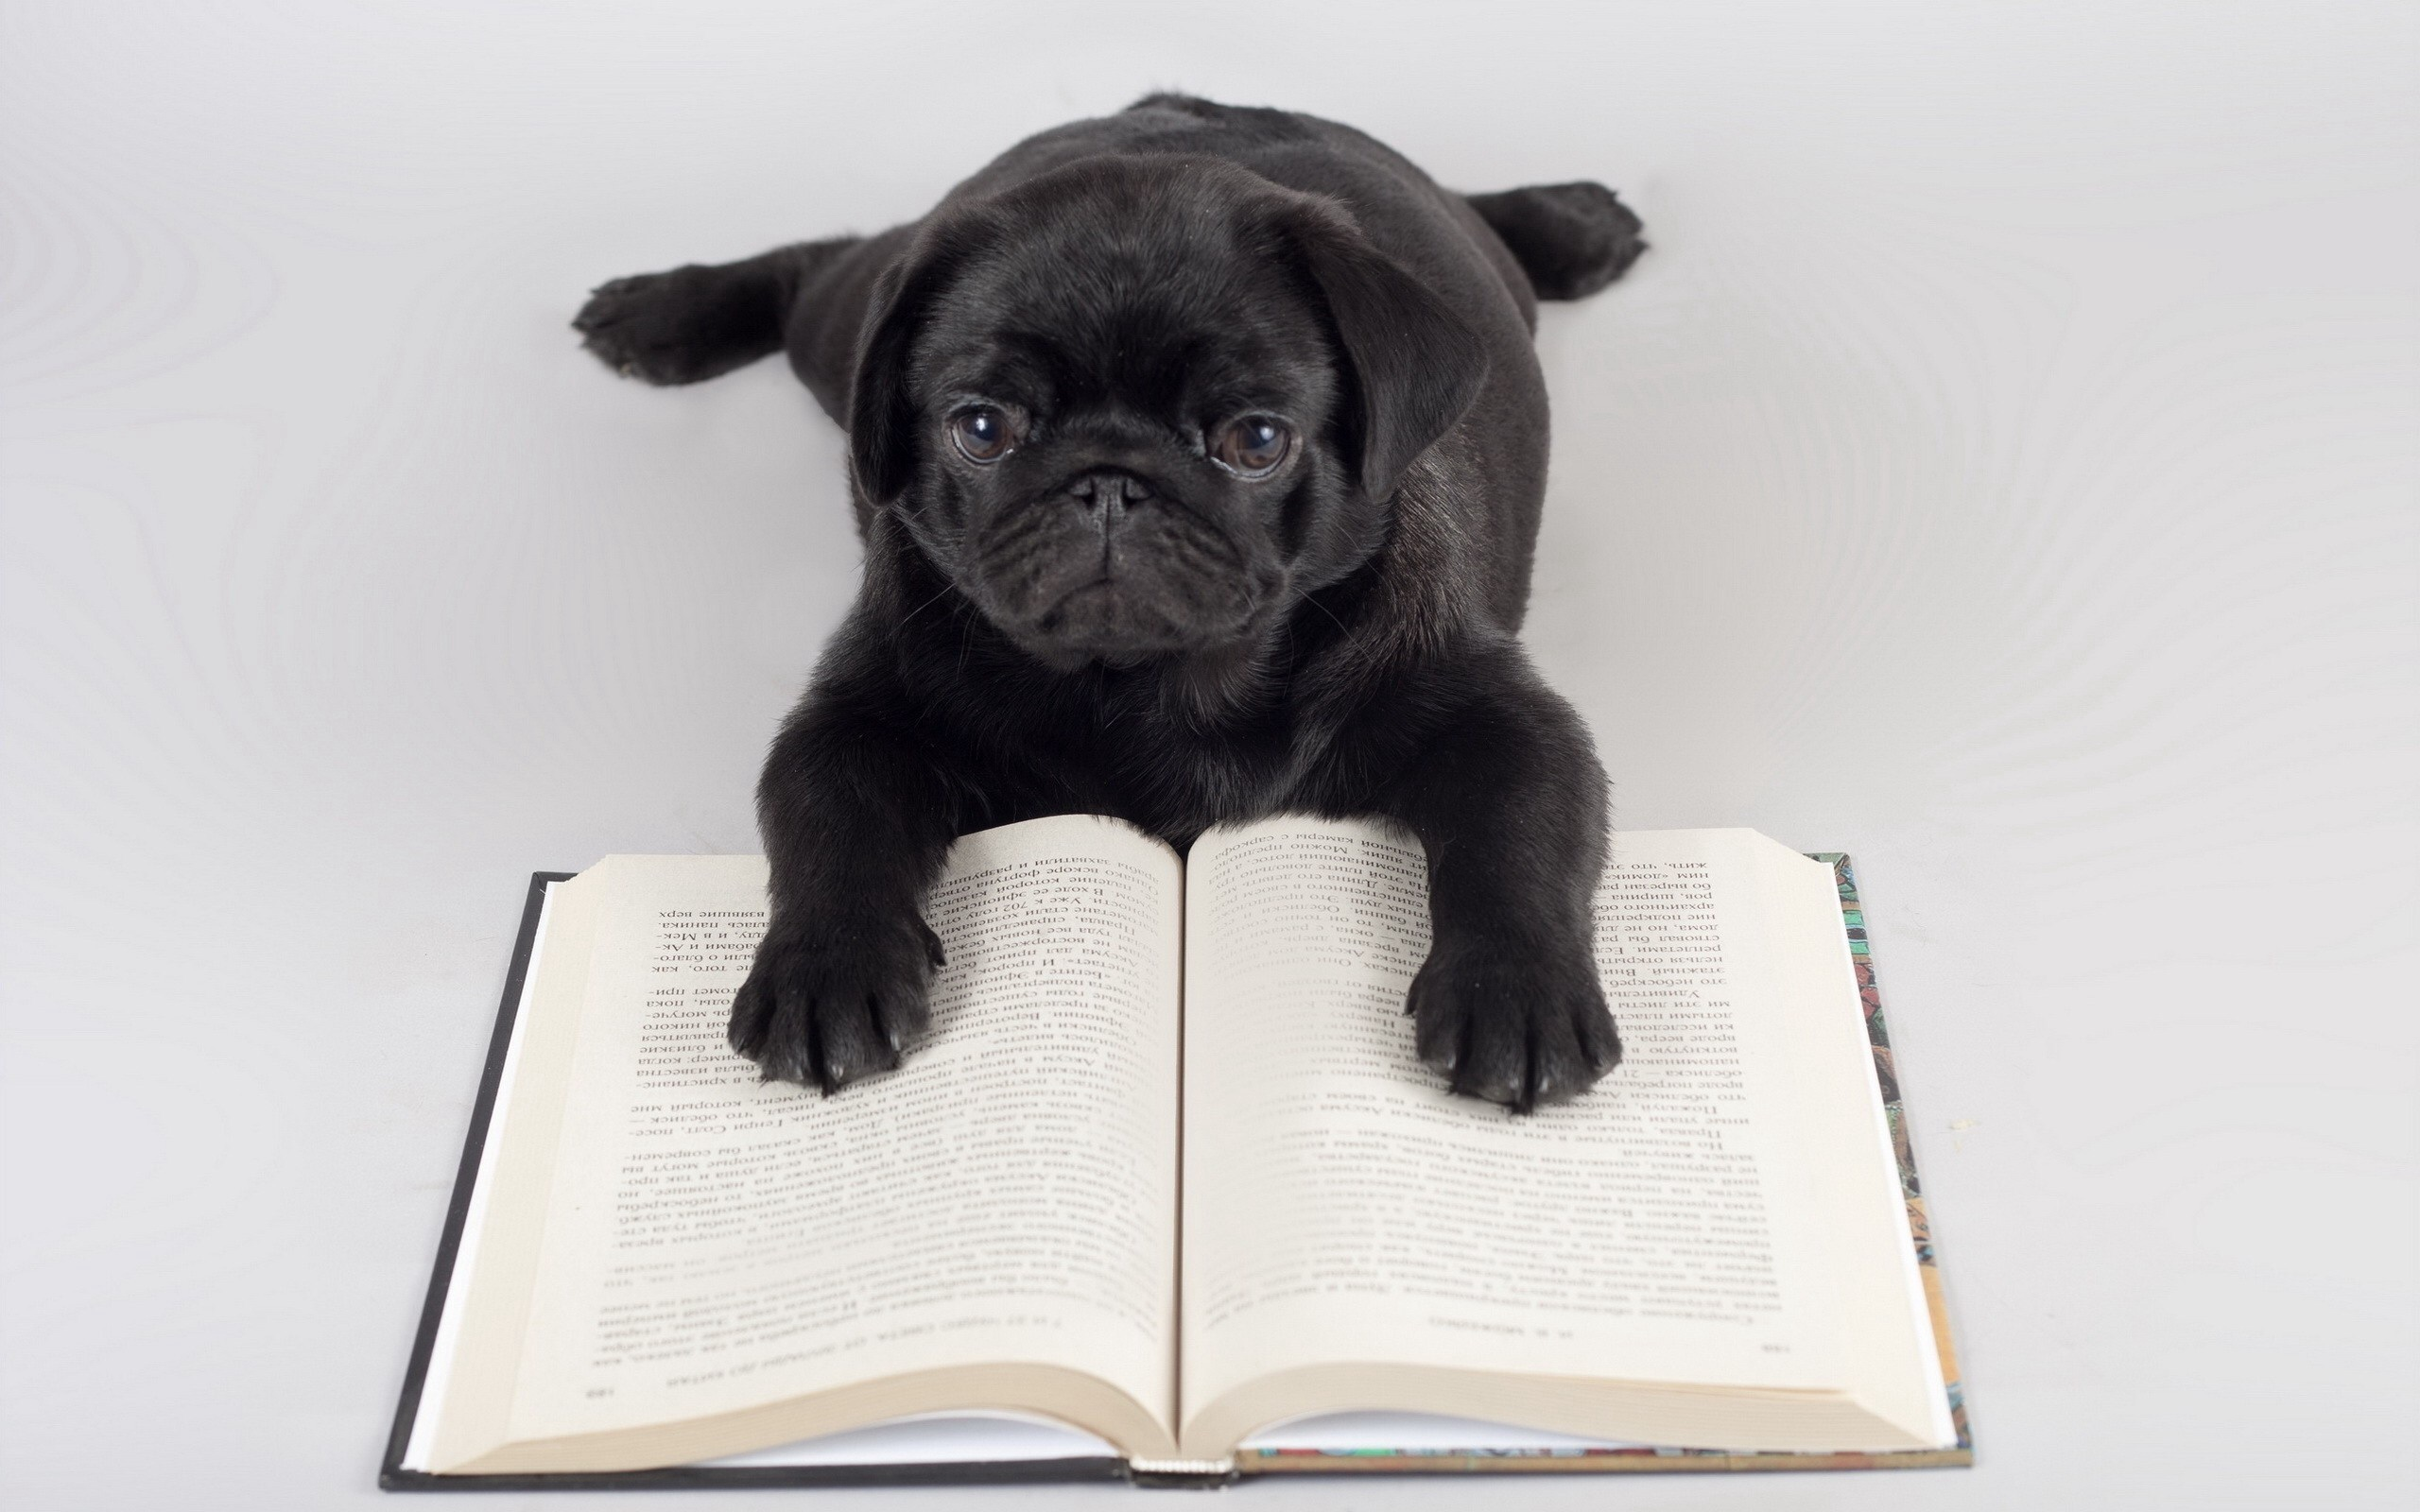 Cute Wallpapers Of Dogs And Puppies Pug Reading Wallpapers Pug Reading Stock Photos